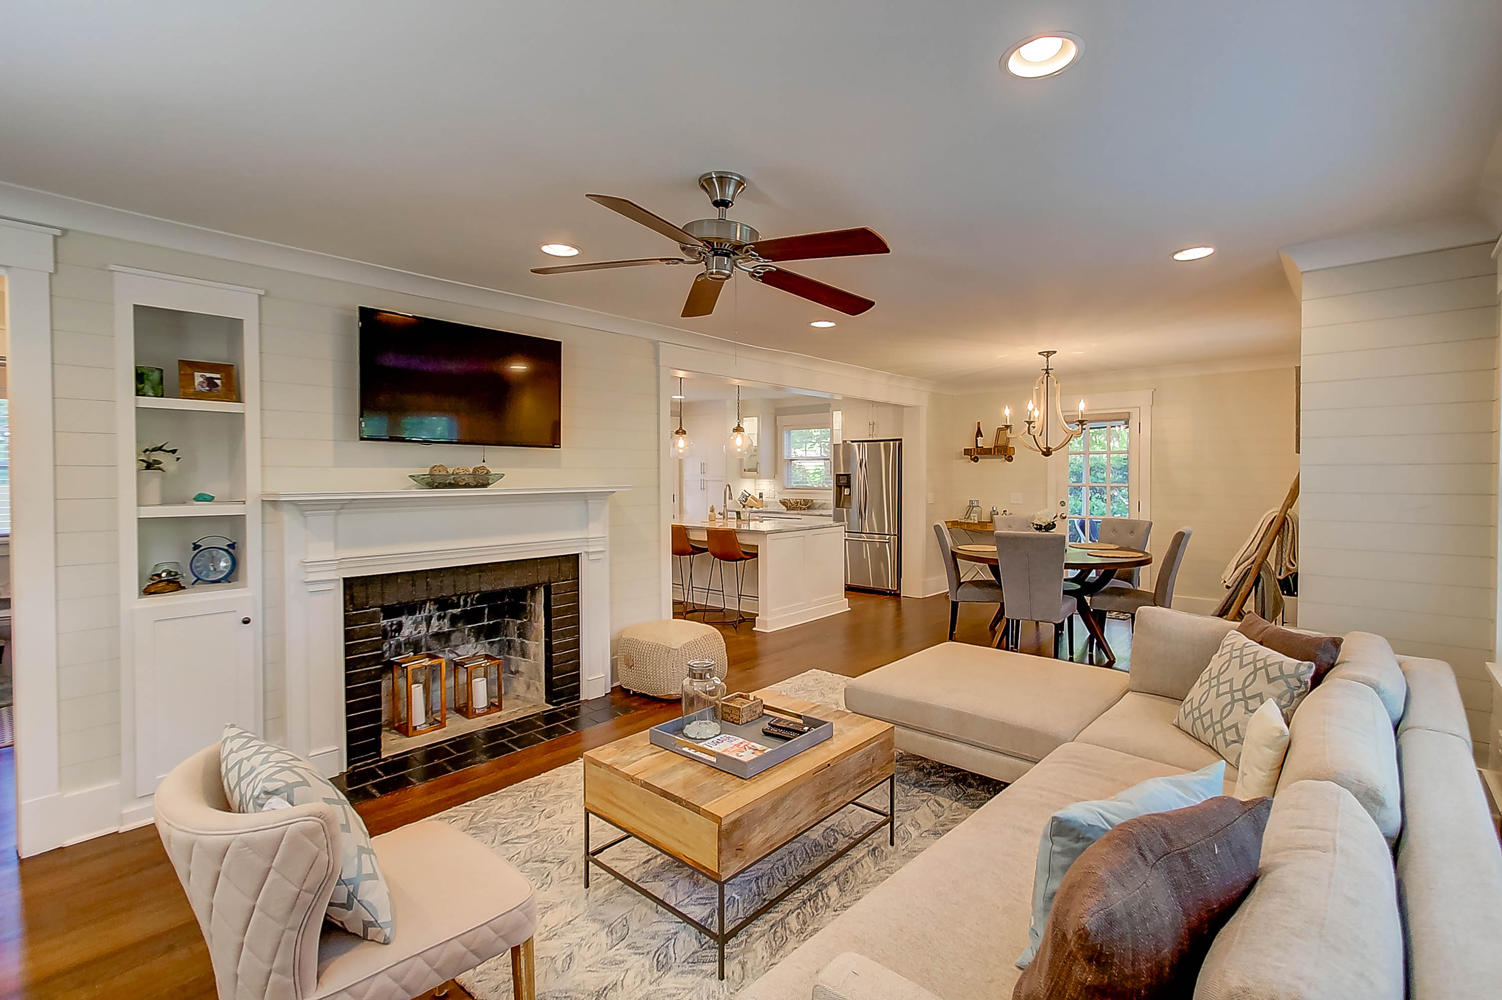 Riverland Terrace Homes For Sale - 2138 Wappoo, Charleston, SC - 3